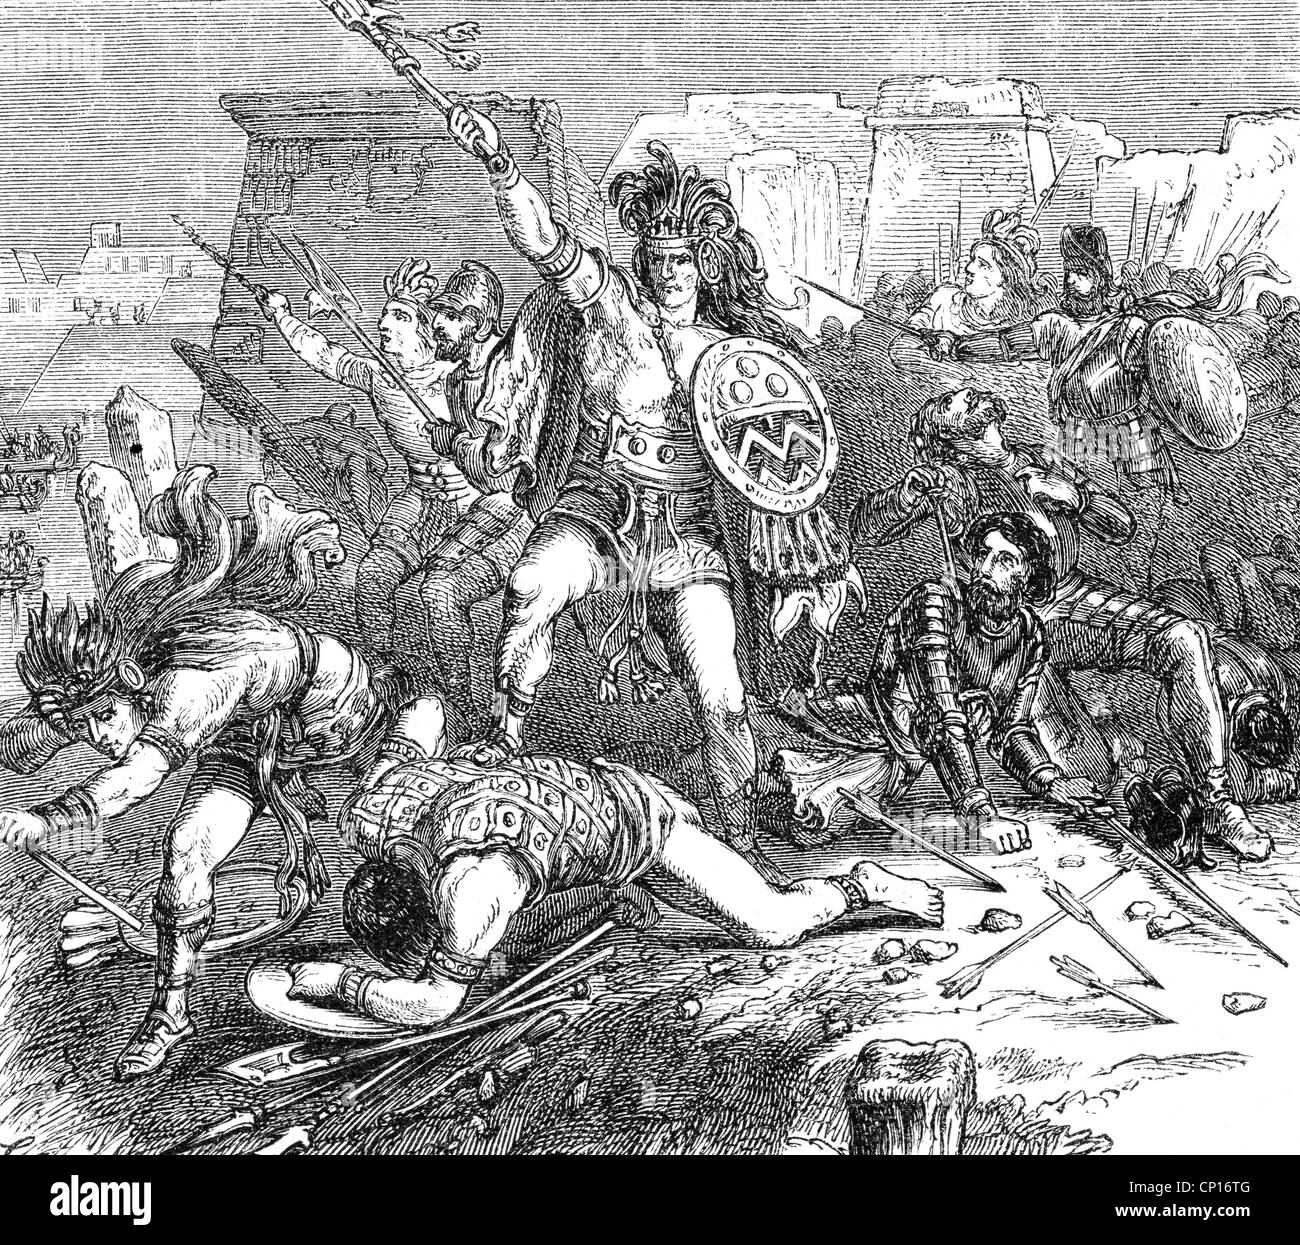 geography / travel, Mexico, people, Aztec warrior in battle, wood engraving, 19th century, Central America, historic, - Stock Image